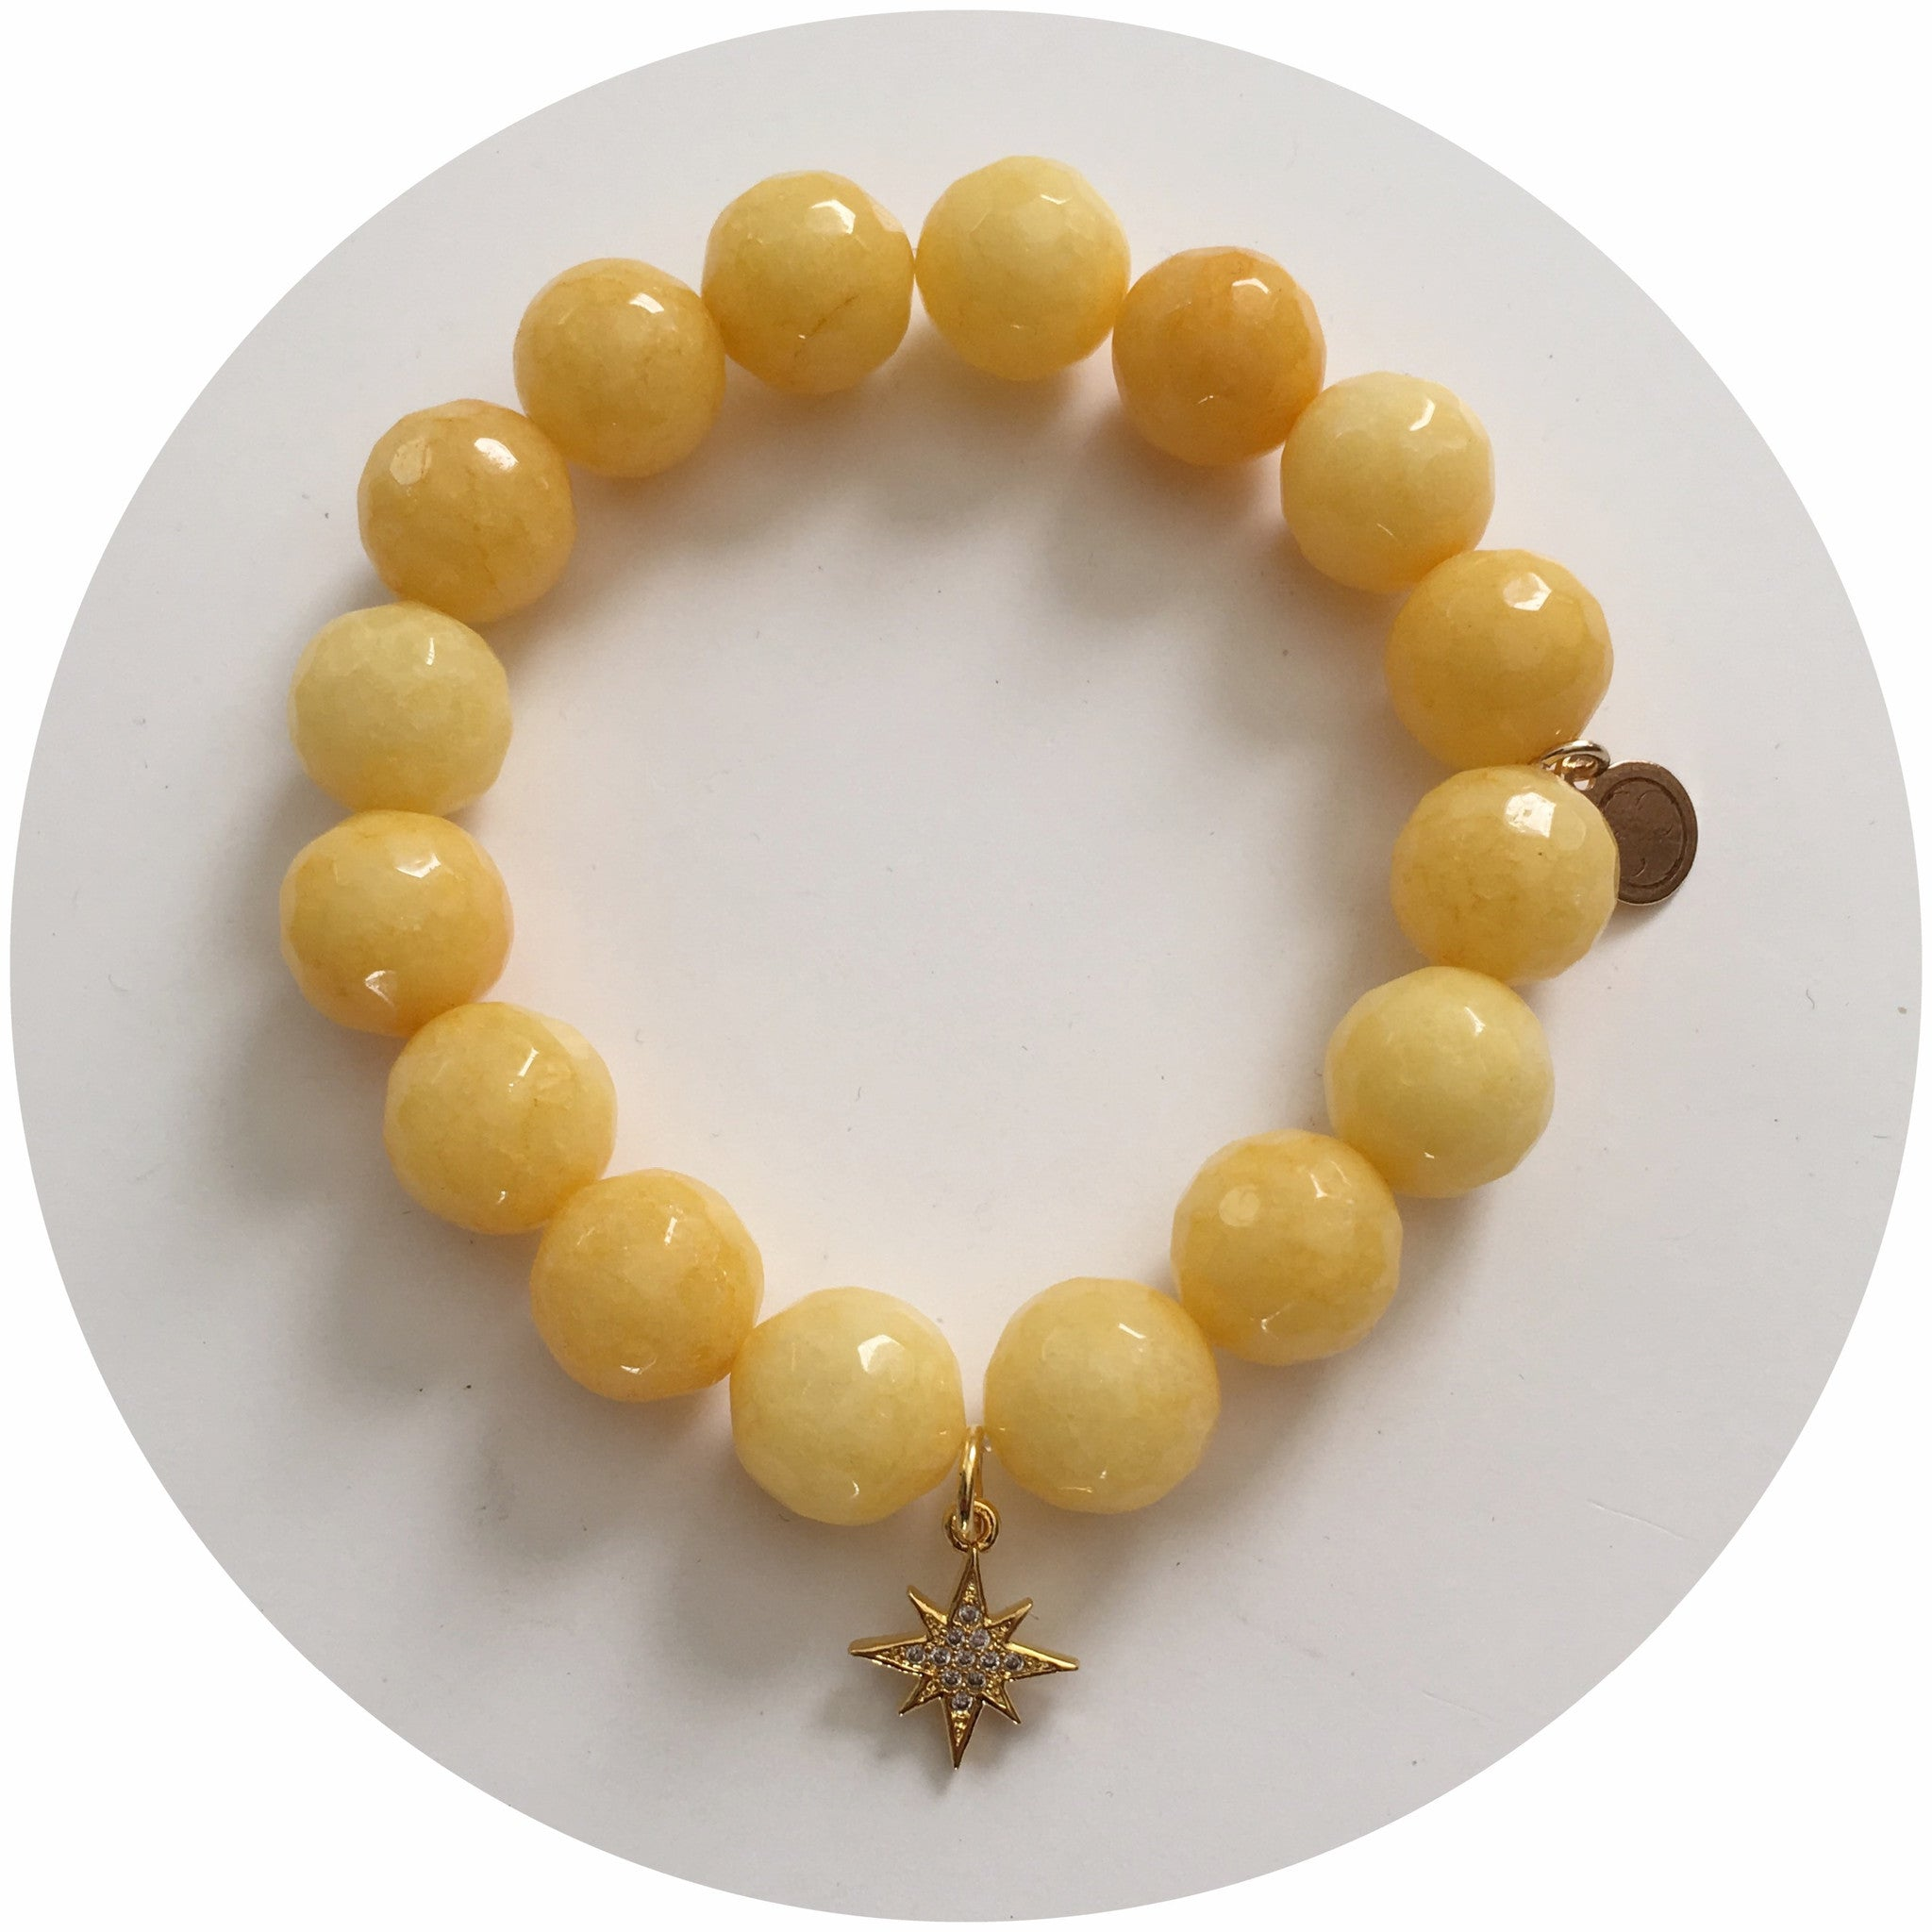 Yellow Jade Champion Child with Gold Pavé Mini Starburst Pendant - Oriana Lamarca LLC